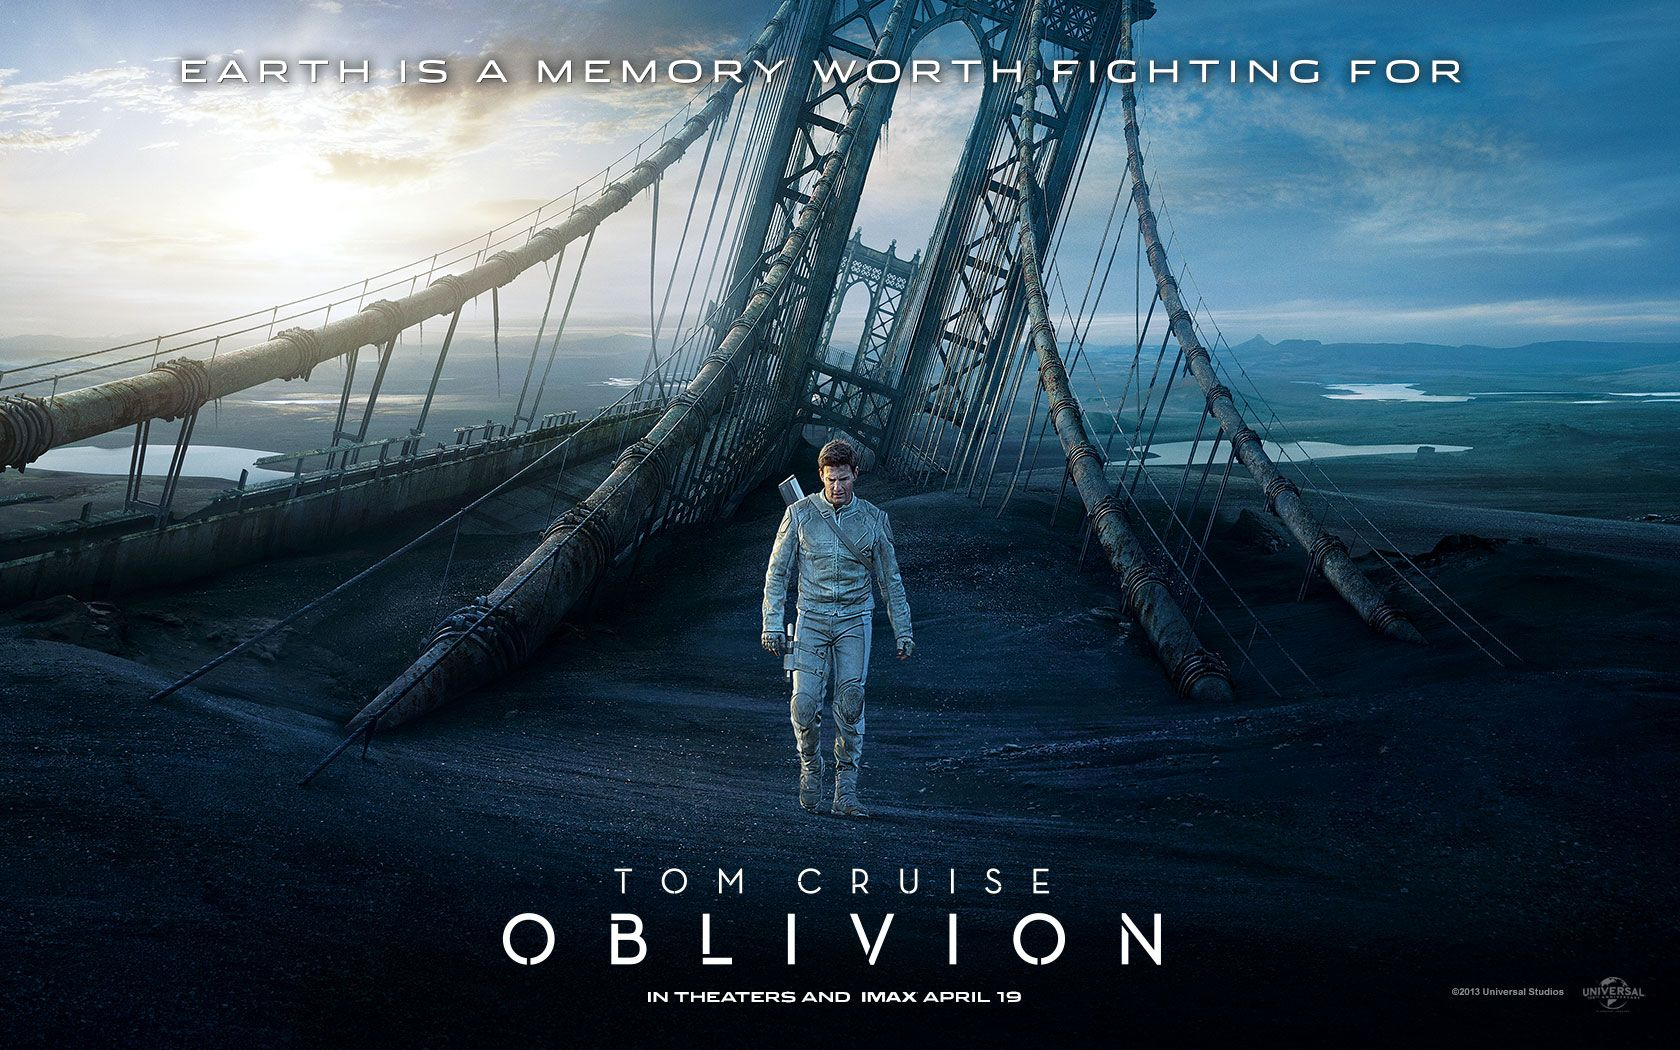 Tom Cruise Oblivion Movie Hd Wallpaper Oblivion Movie Oblivion Tom Cruise